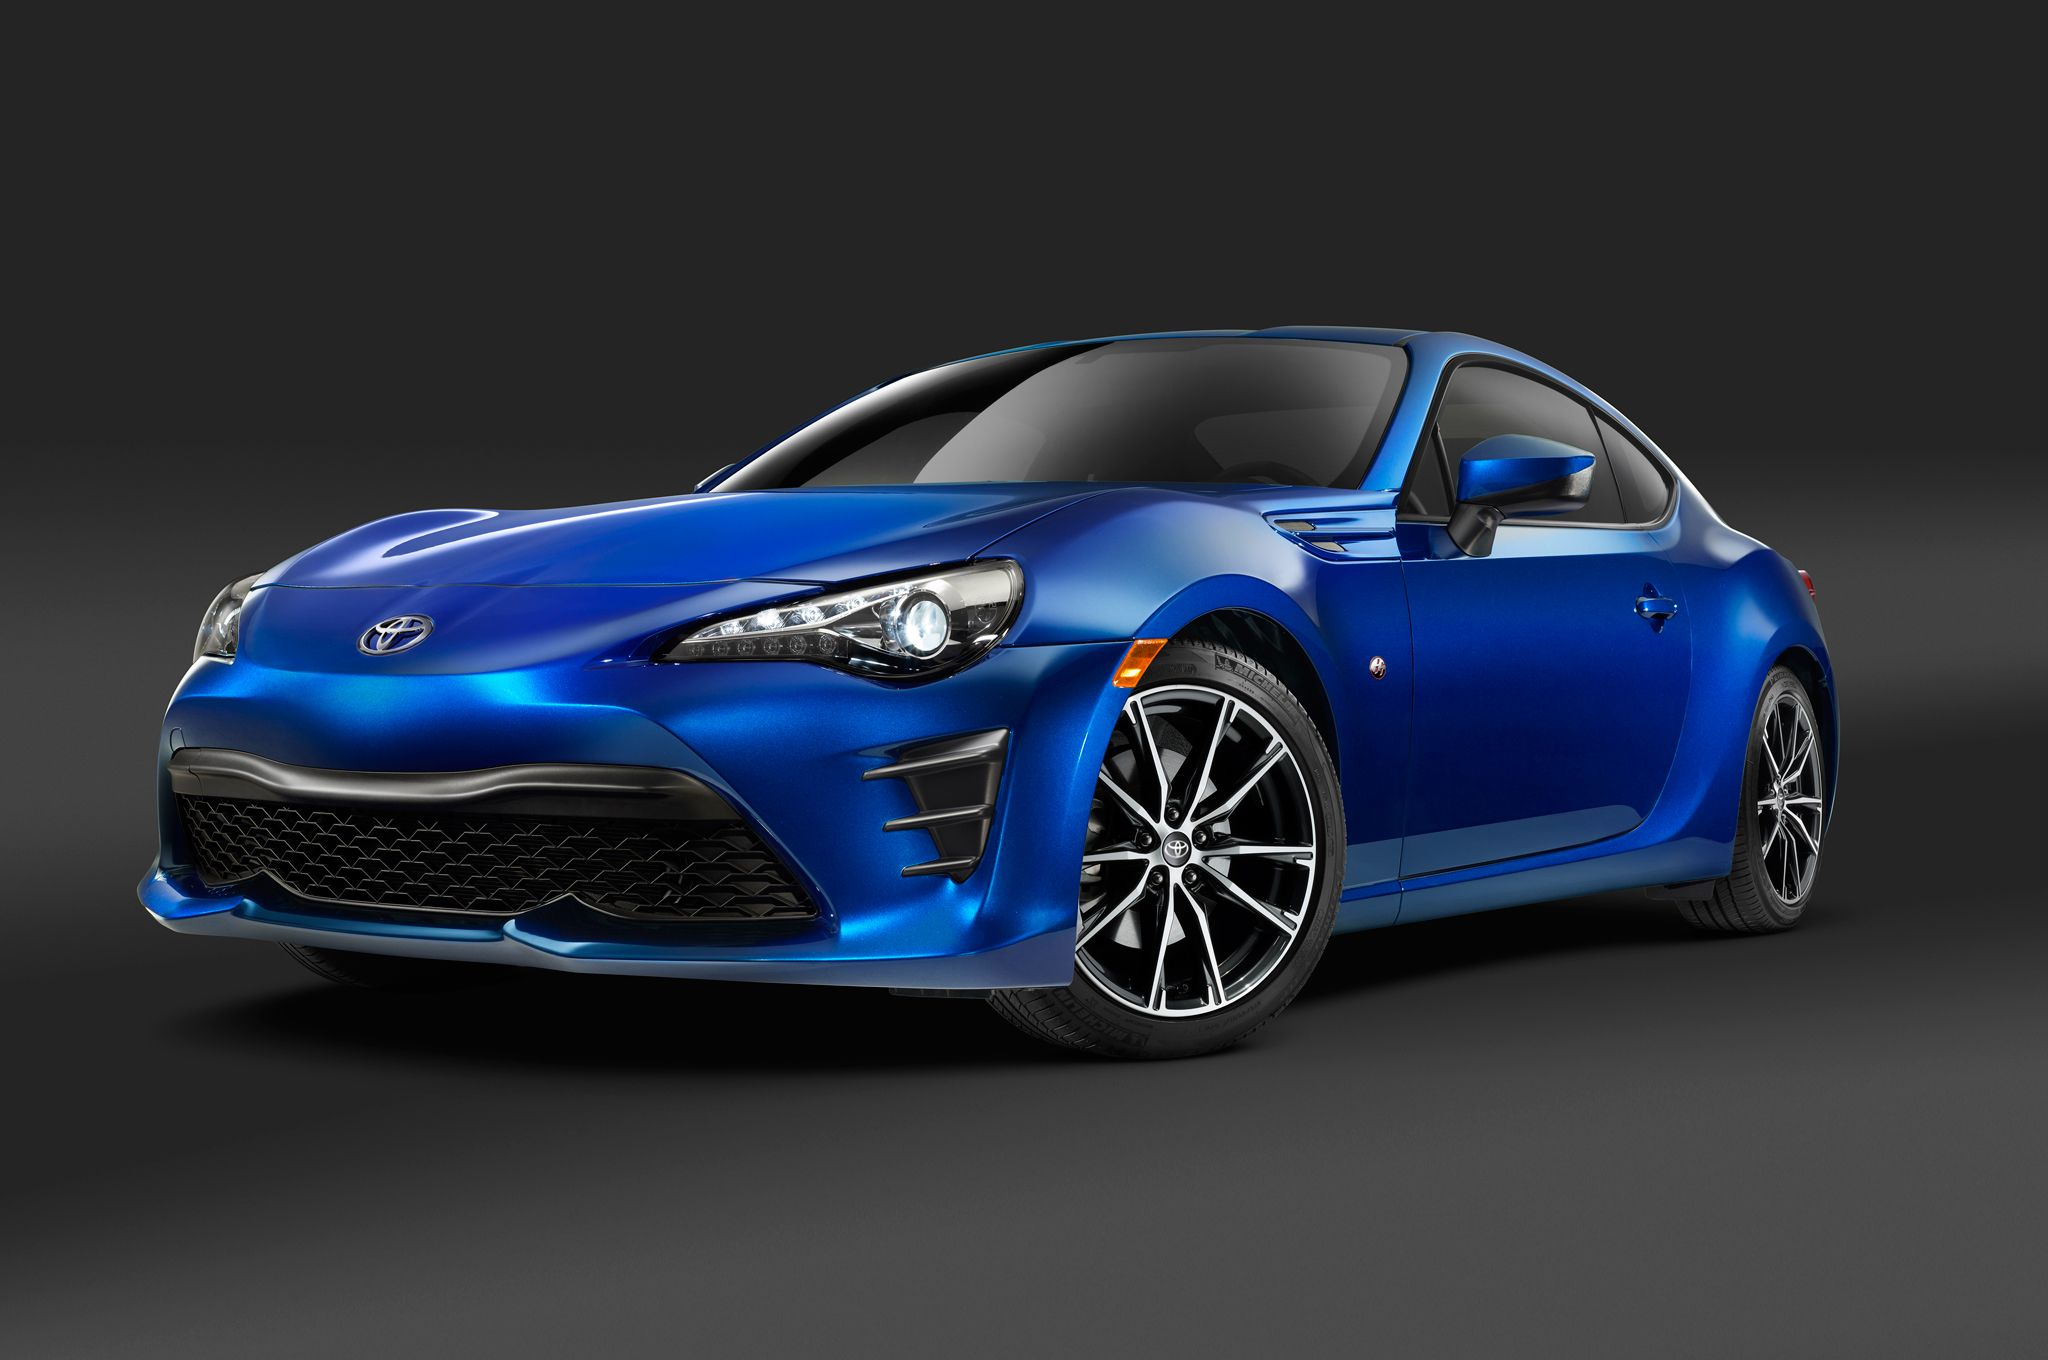 Toyota 86 Will Still fer TRD Accessories Focus Less on